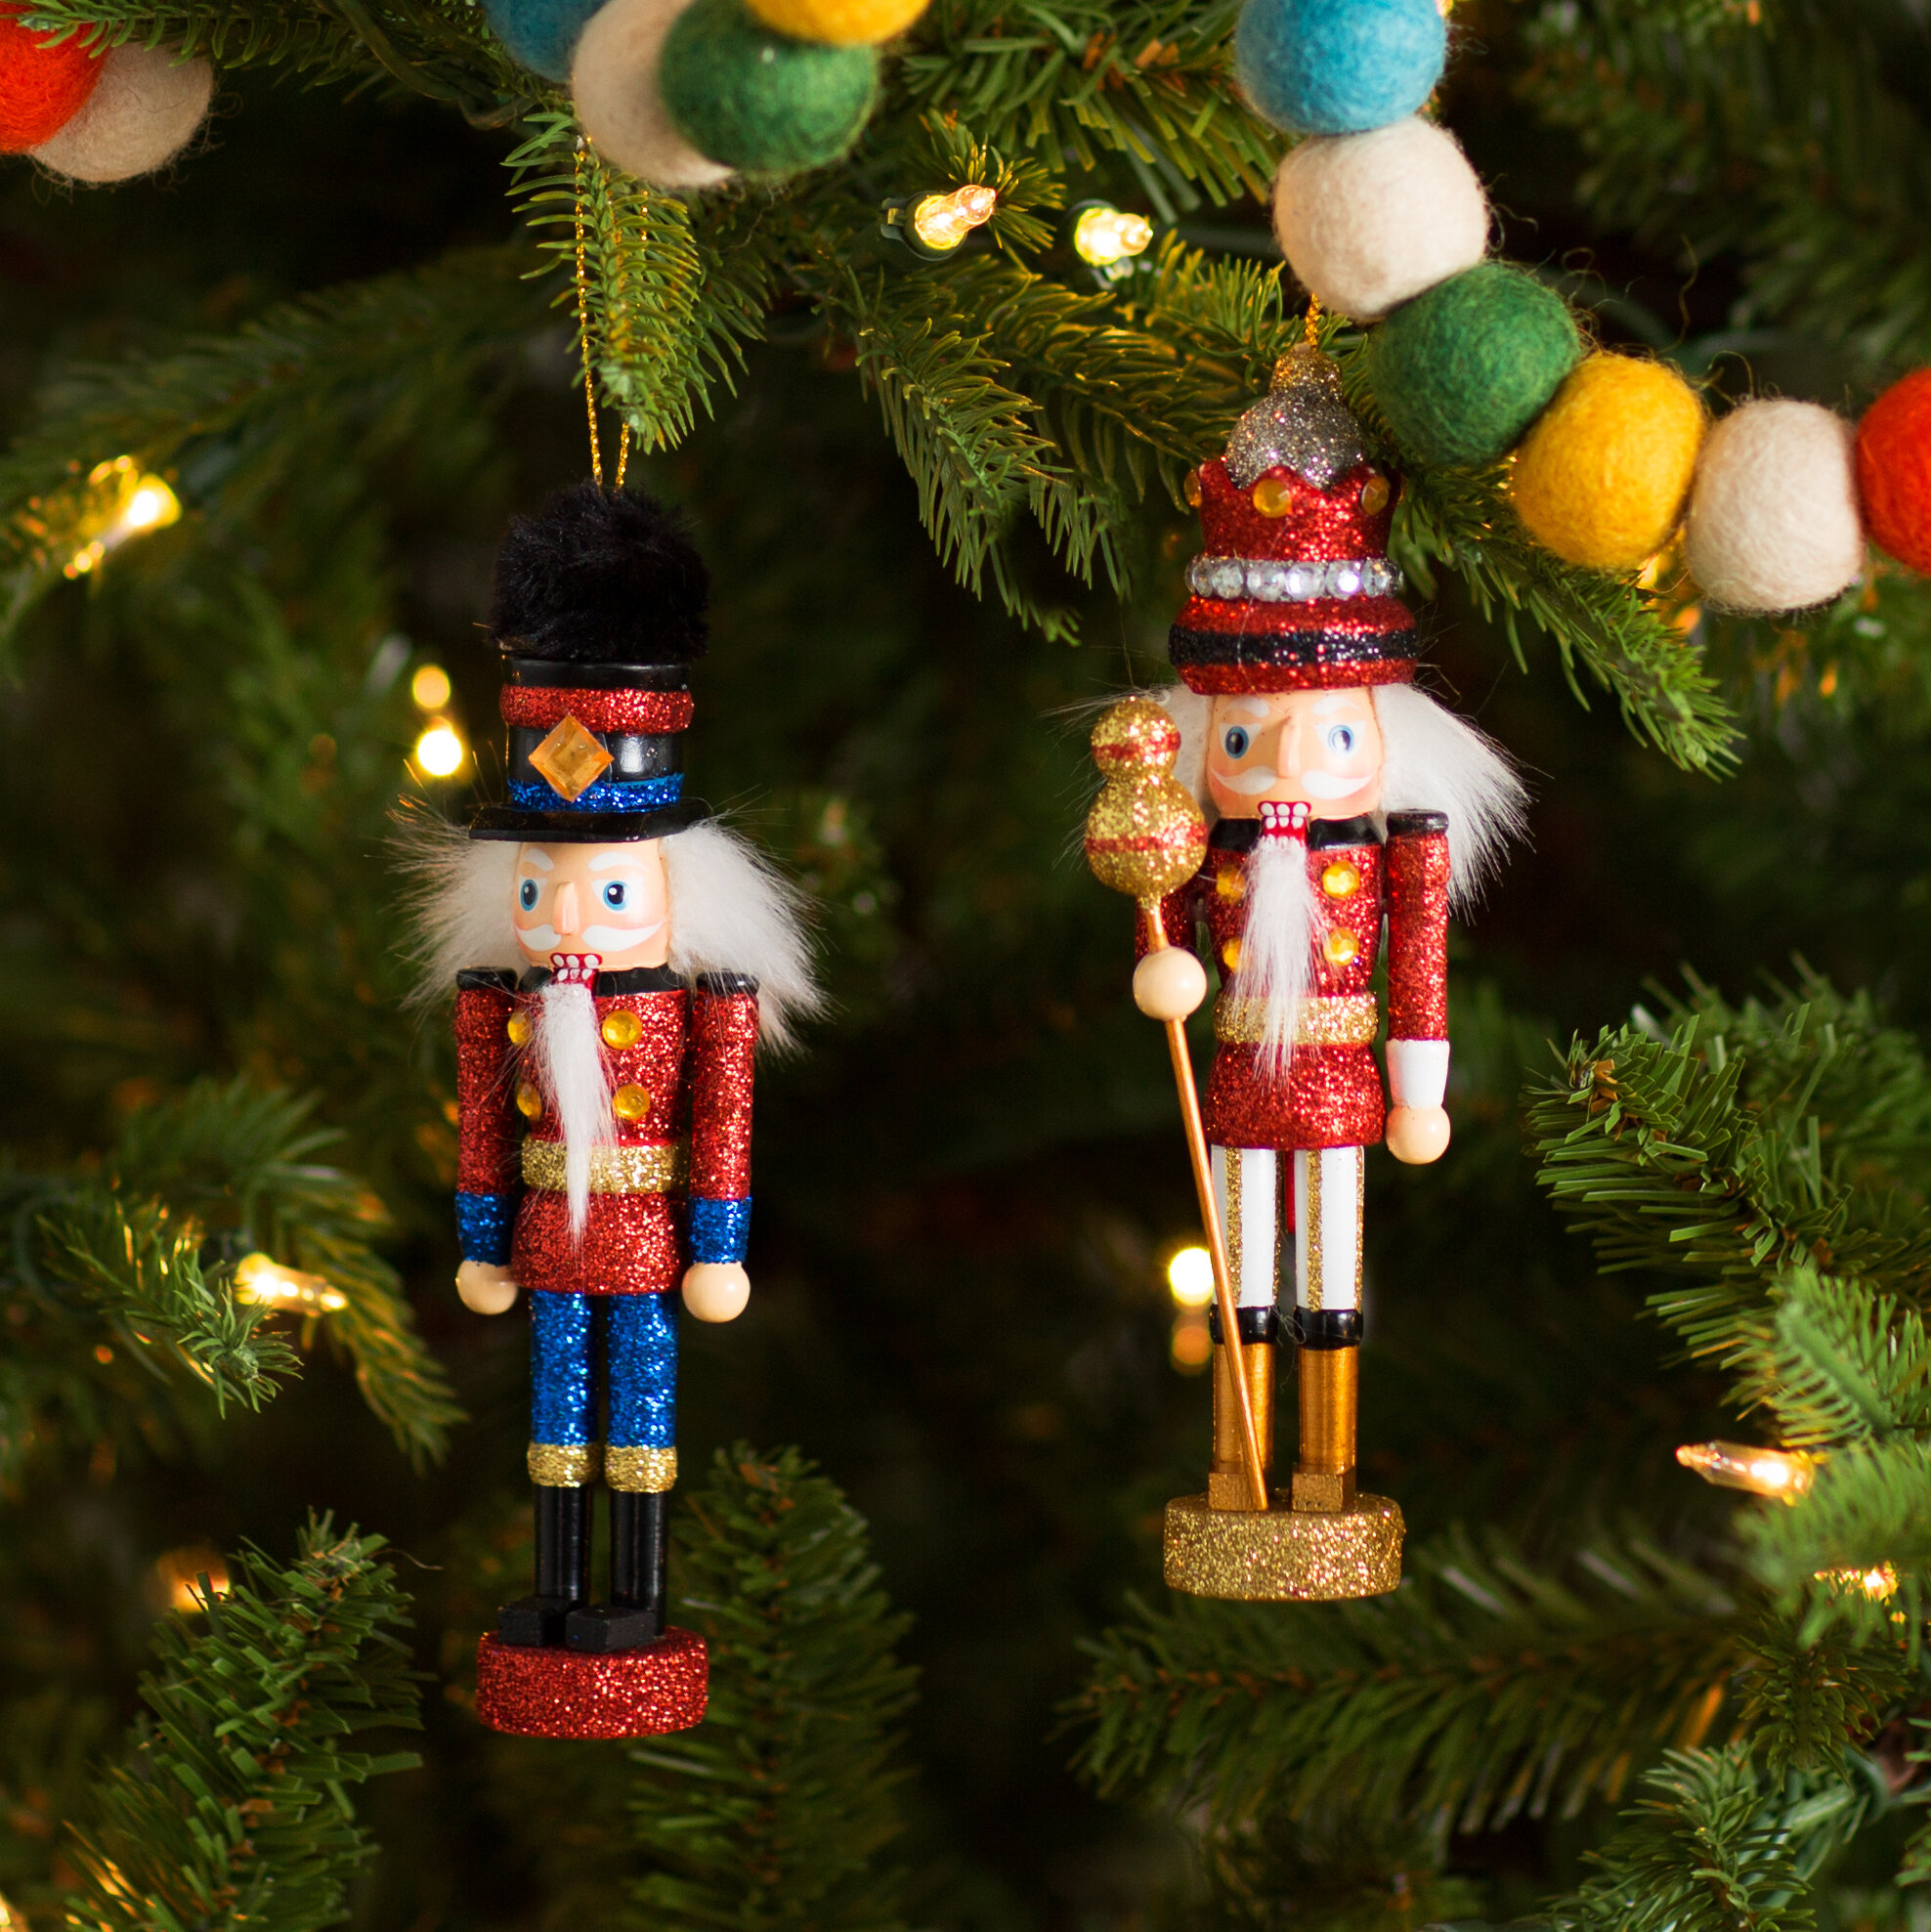 The Holiday Aisle 2 Piece King and Soldier Nutcracker Ornament Set ...